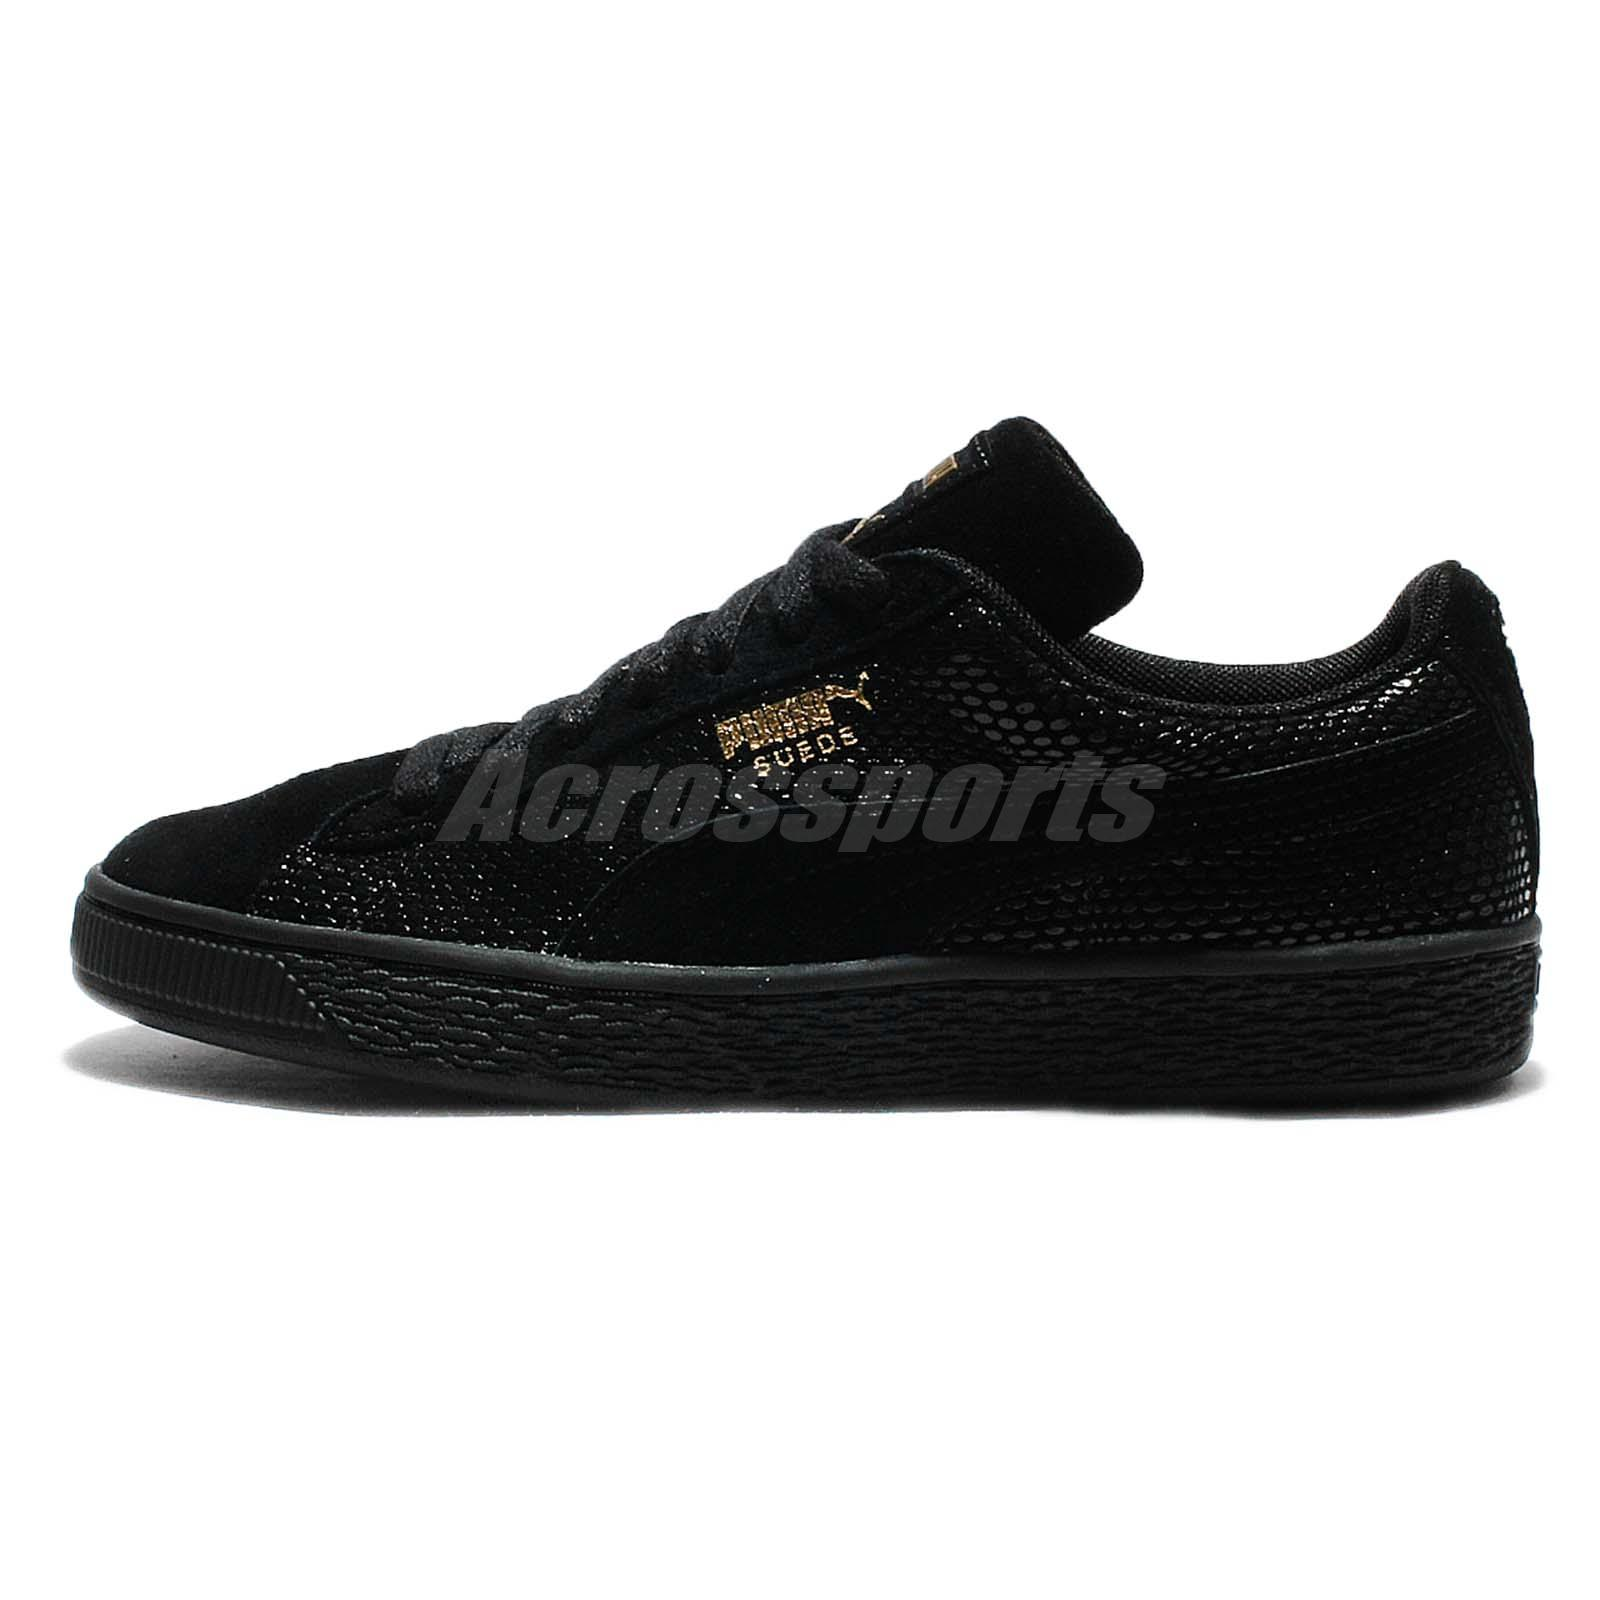 puma shoes suede black. puma suede gold wns pack black womens casual shoes sneakers 361862-01 b